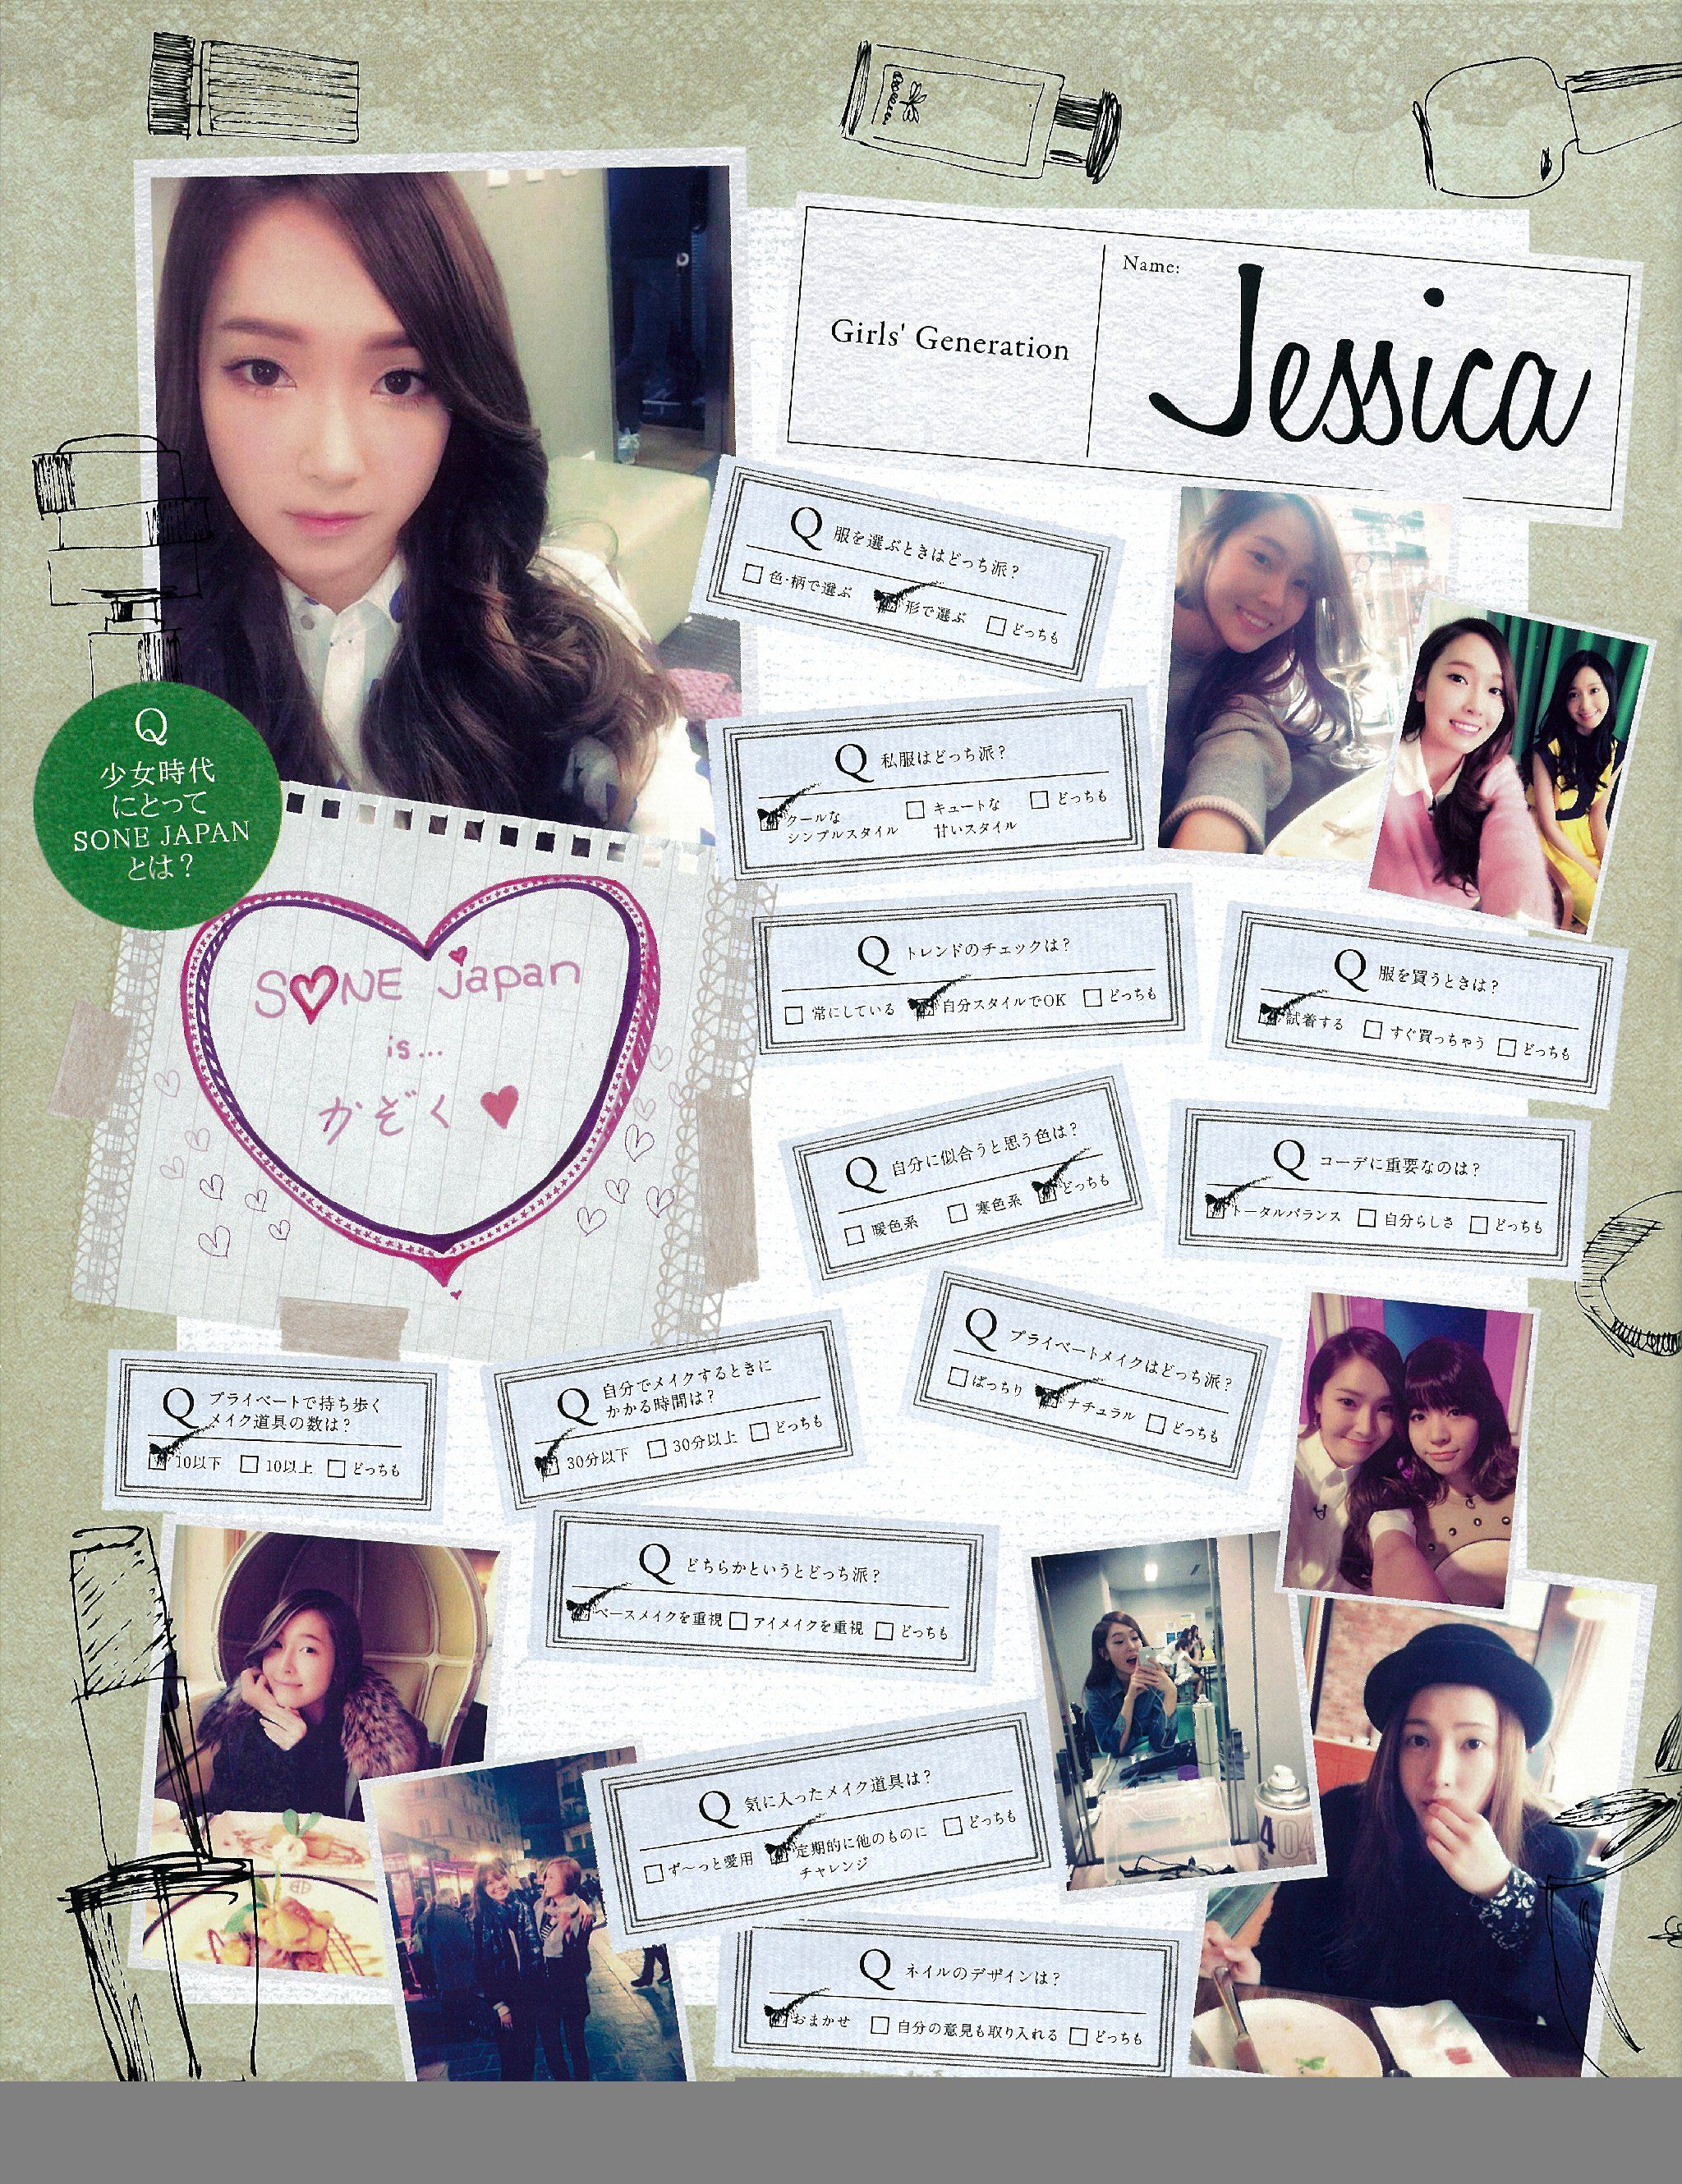 Sone snsd quotes o - Snsd Girls Generation Jessica Sone Note Vol 3